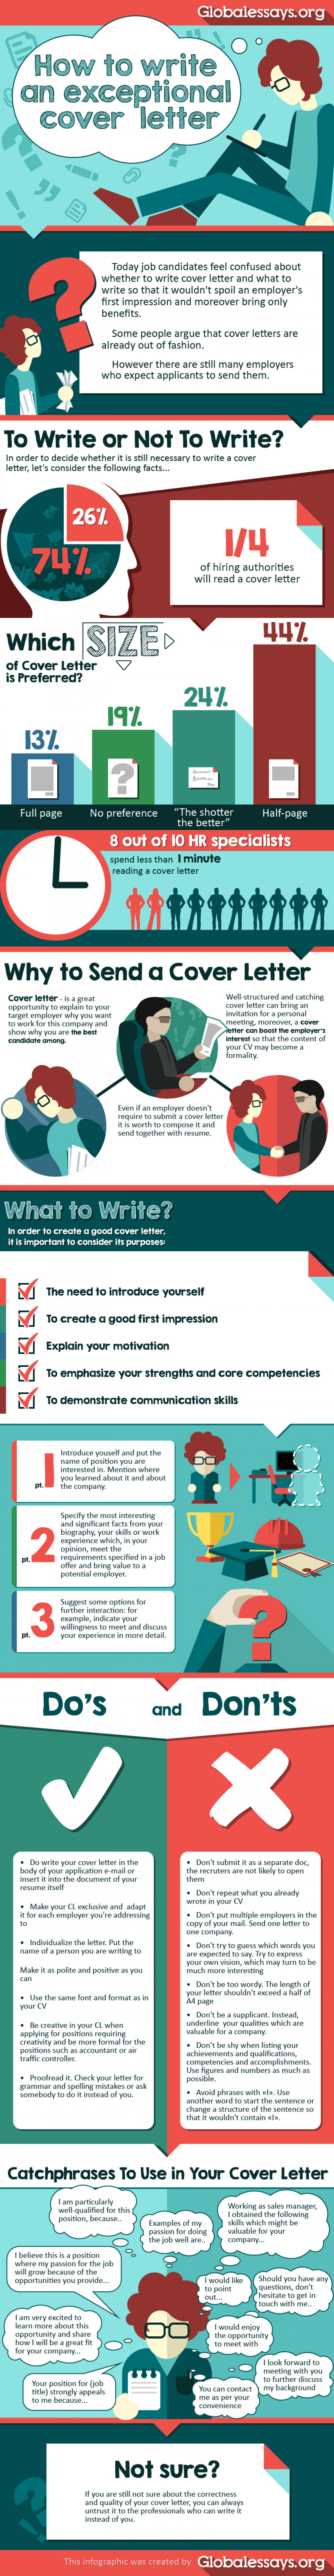 How to write an exceptional cover letter visual how to write an exceptional cover letter infographic madrichimfo Image collections